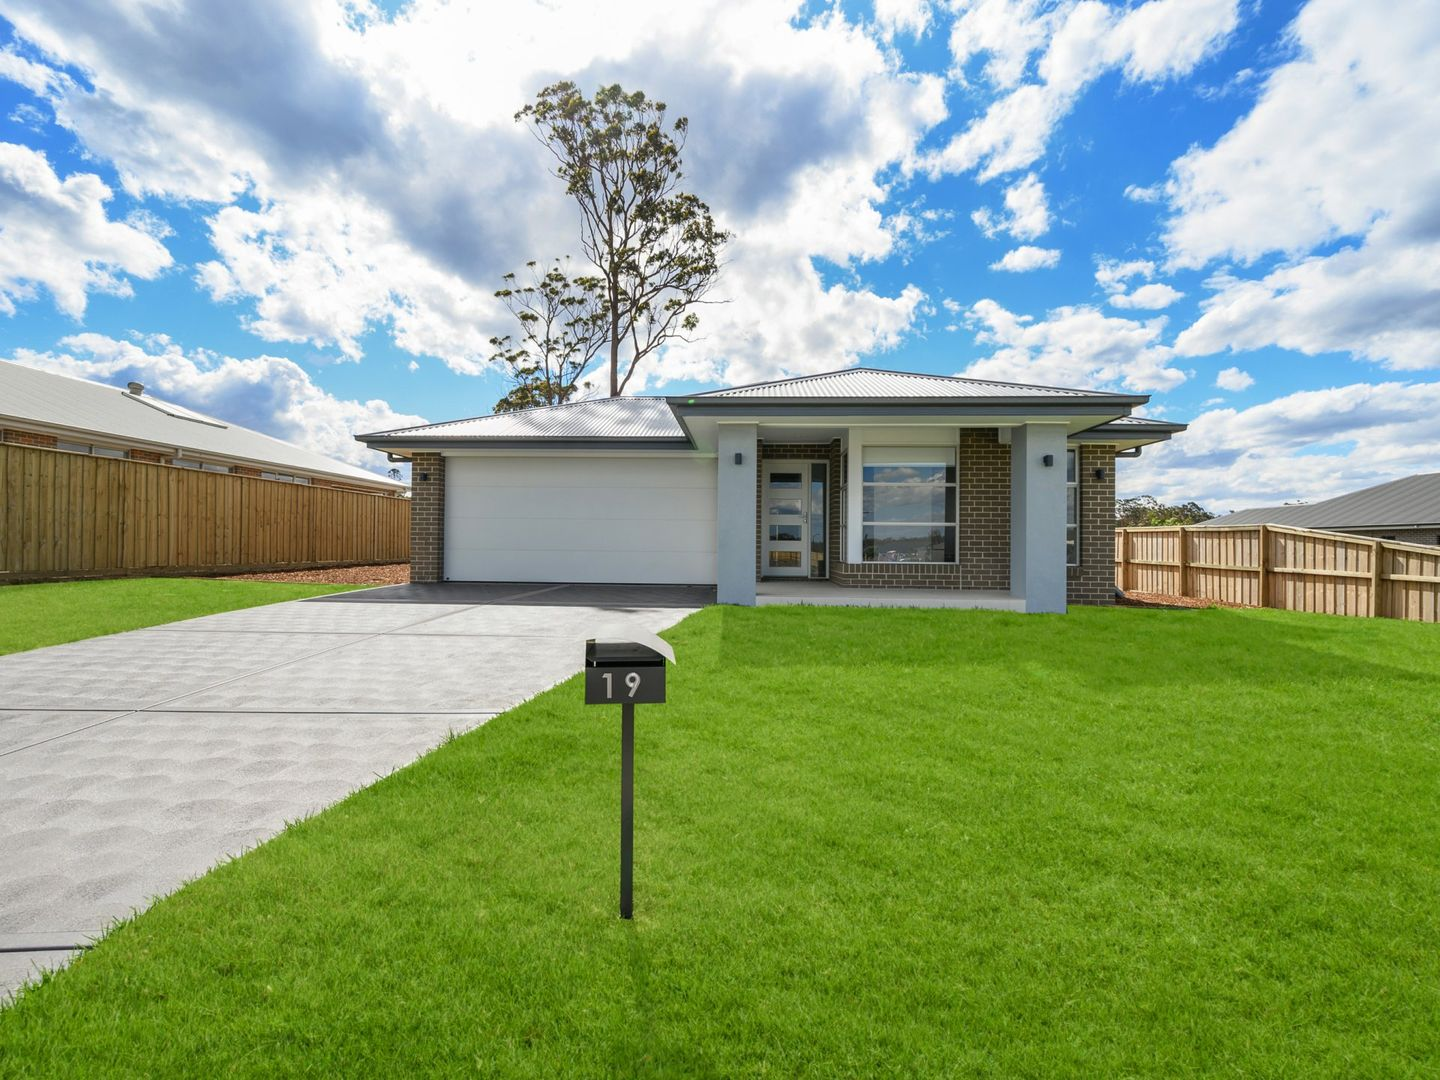 19 The Bower Road, Medowie NSW 2318, Image 0